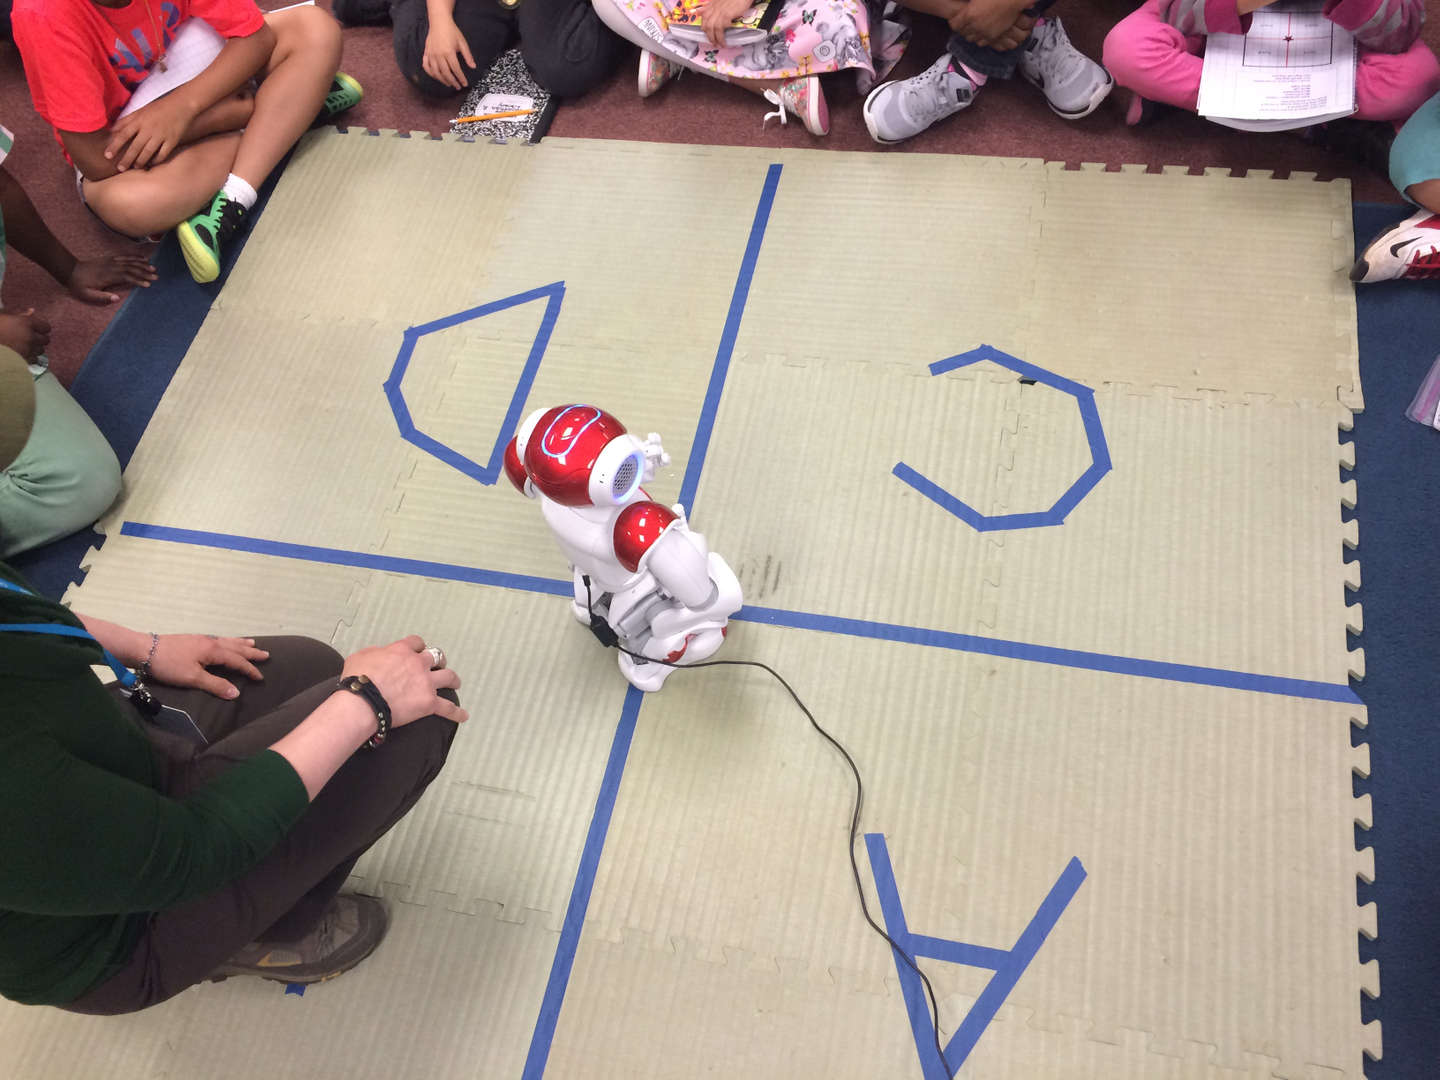 Robotics Curriculum with Nao Robot in action.